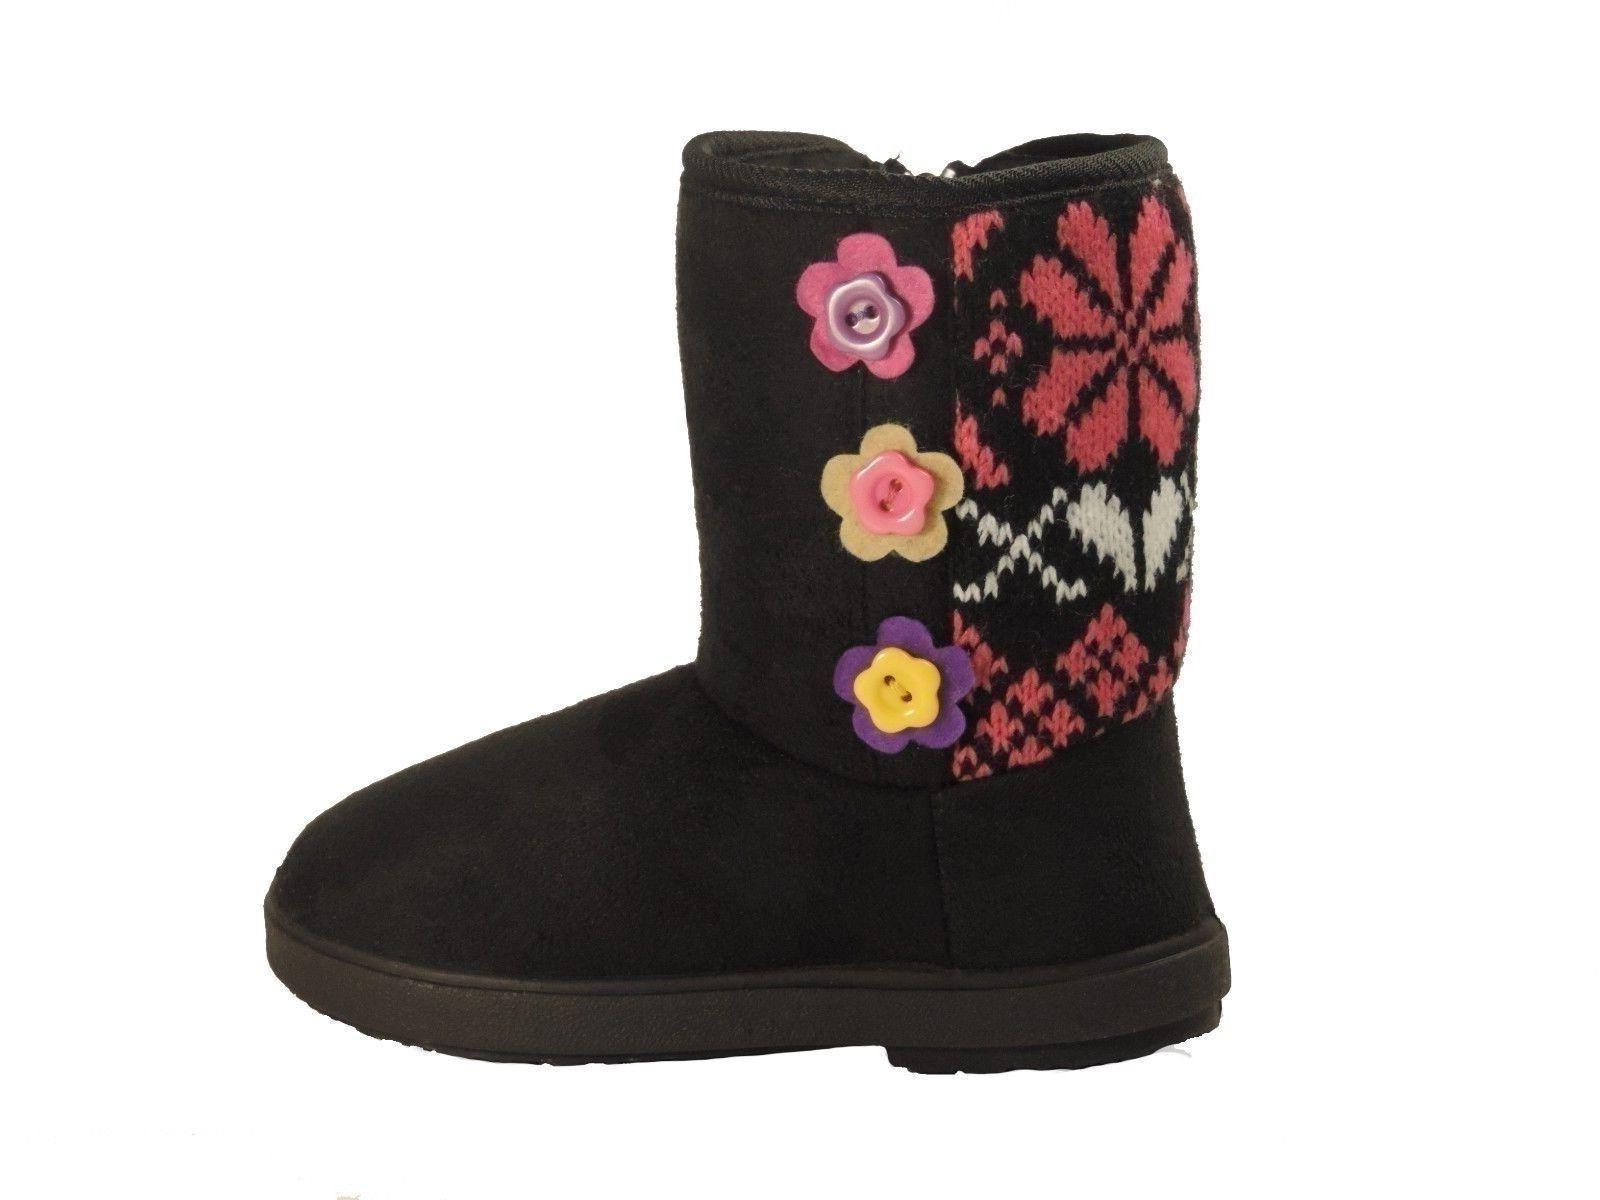 New toddler girls boots baby kids youth booties